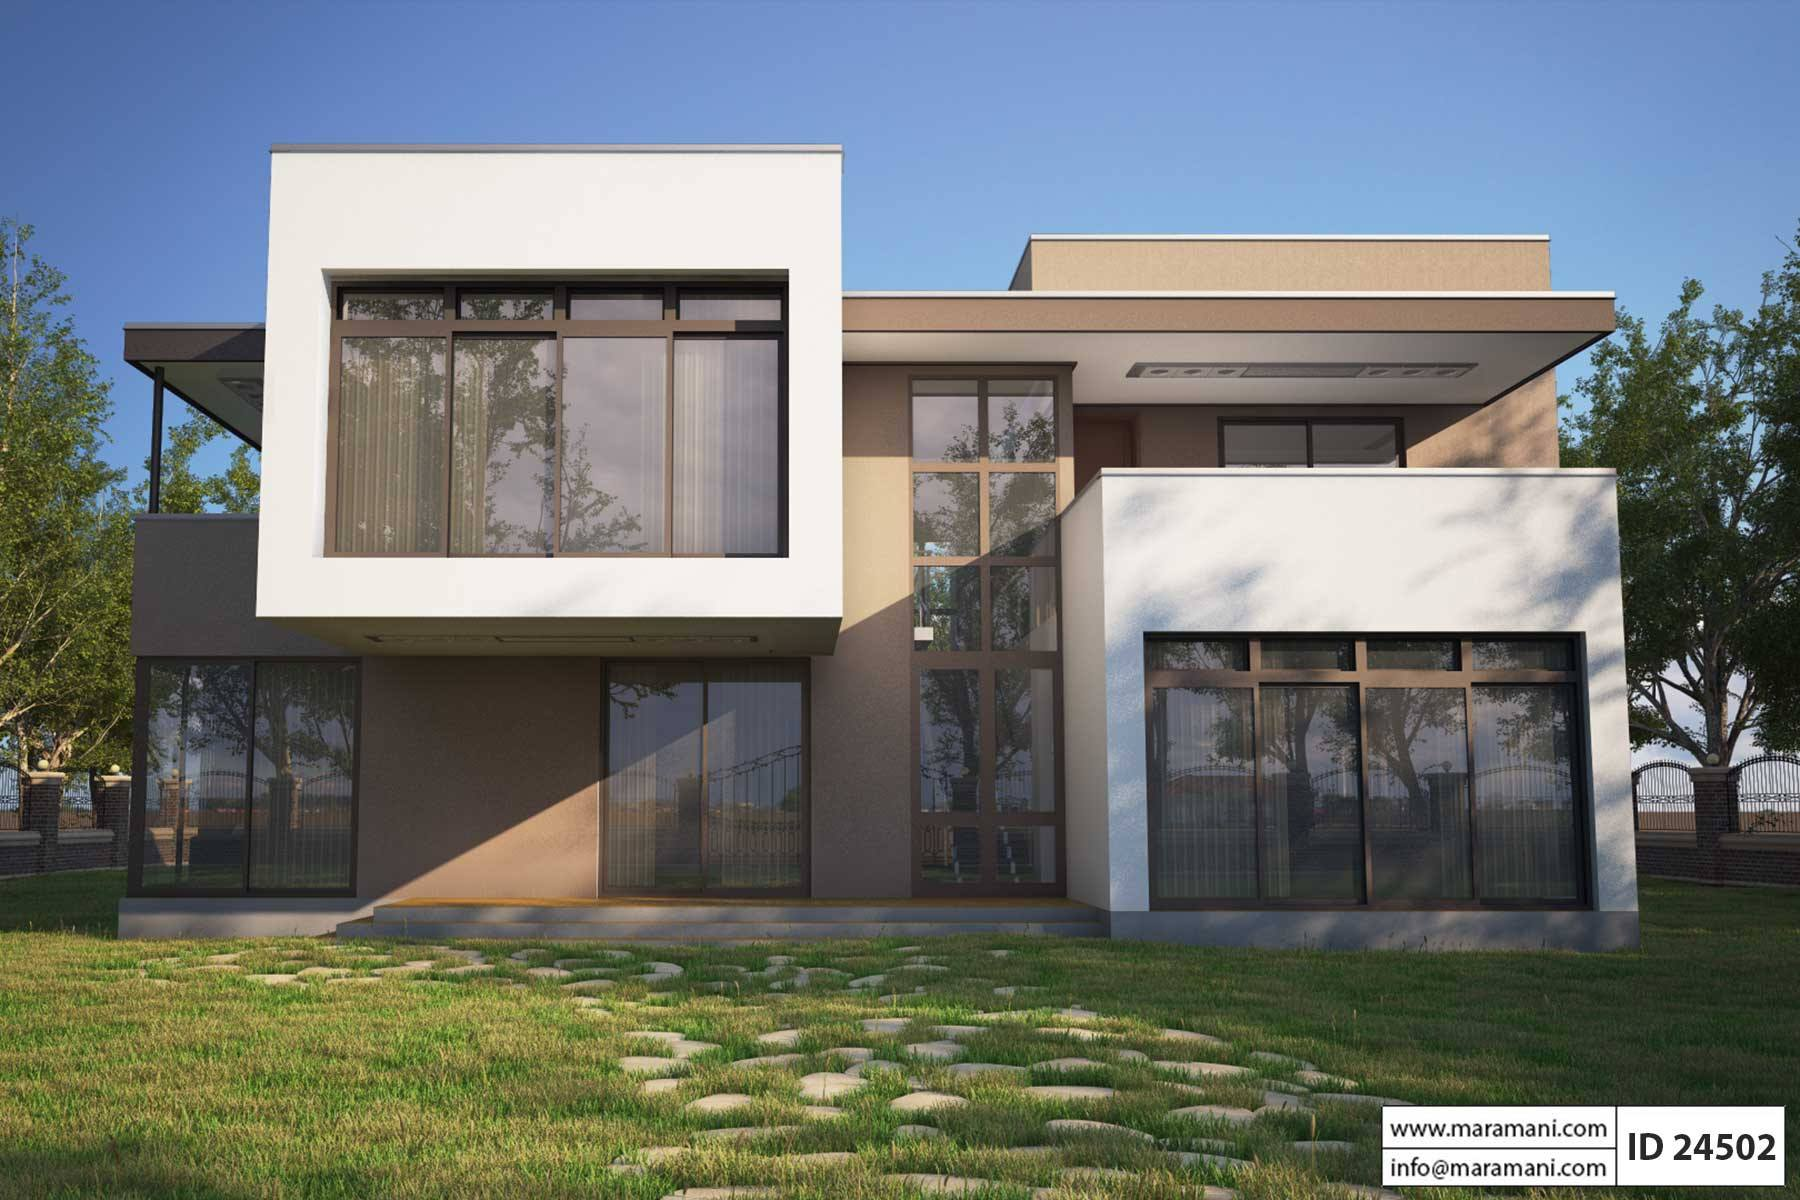 4 Bedrooms For Rent 4 Bedroom Modern House Plan Id 24502 House Plans Maramani